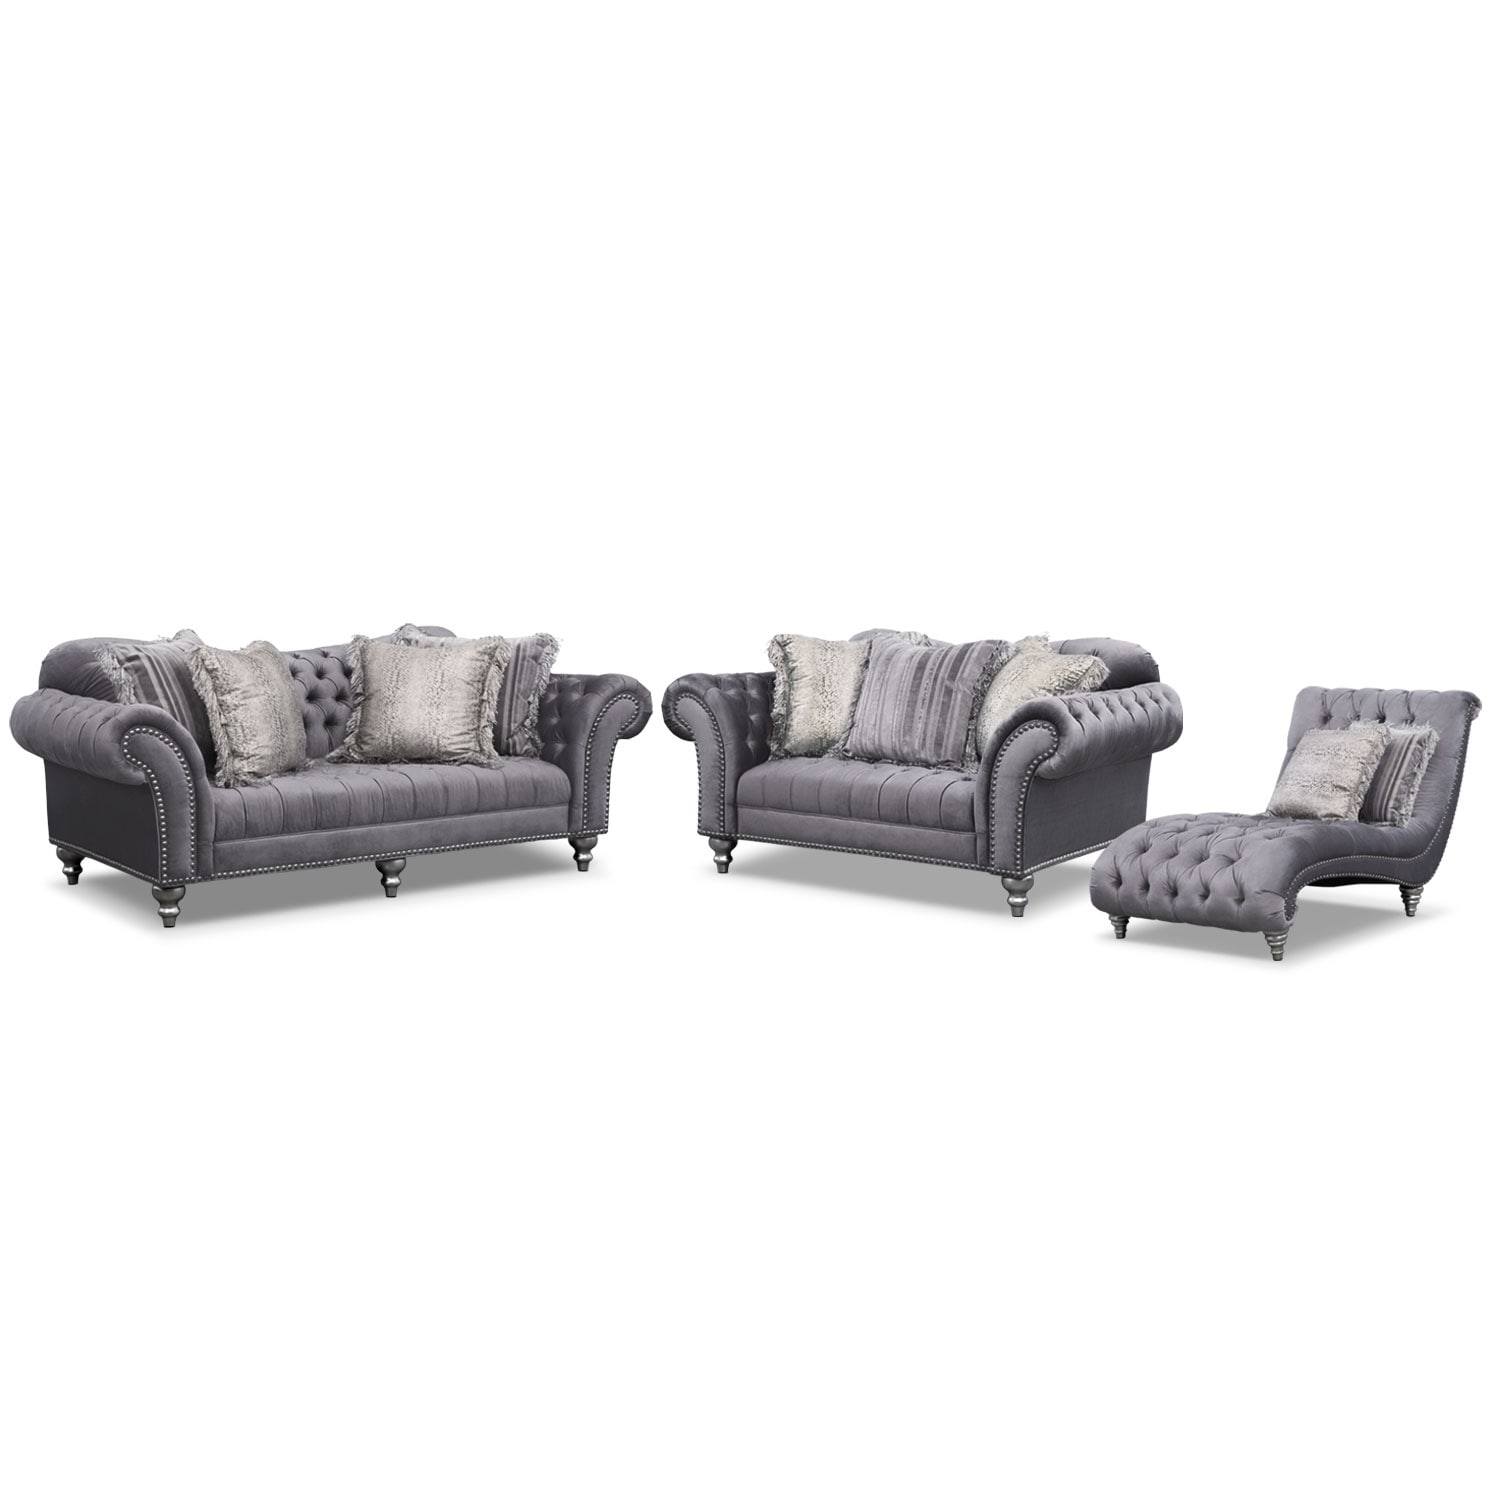 Sofa loveseat and chaise set hodan sofa chaise ashley for Ashley furniture chaise lounge couch